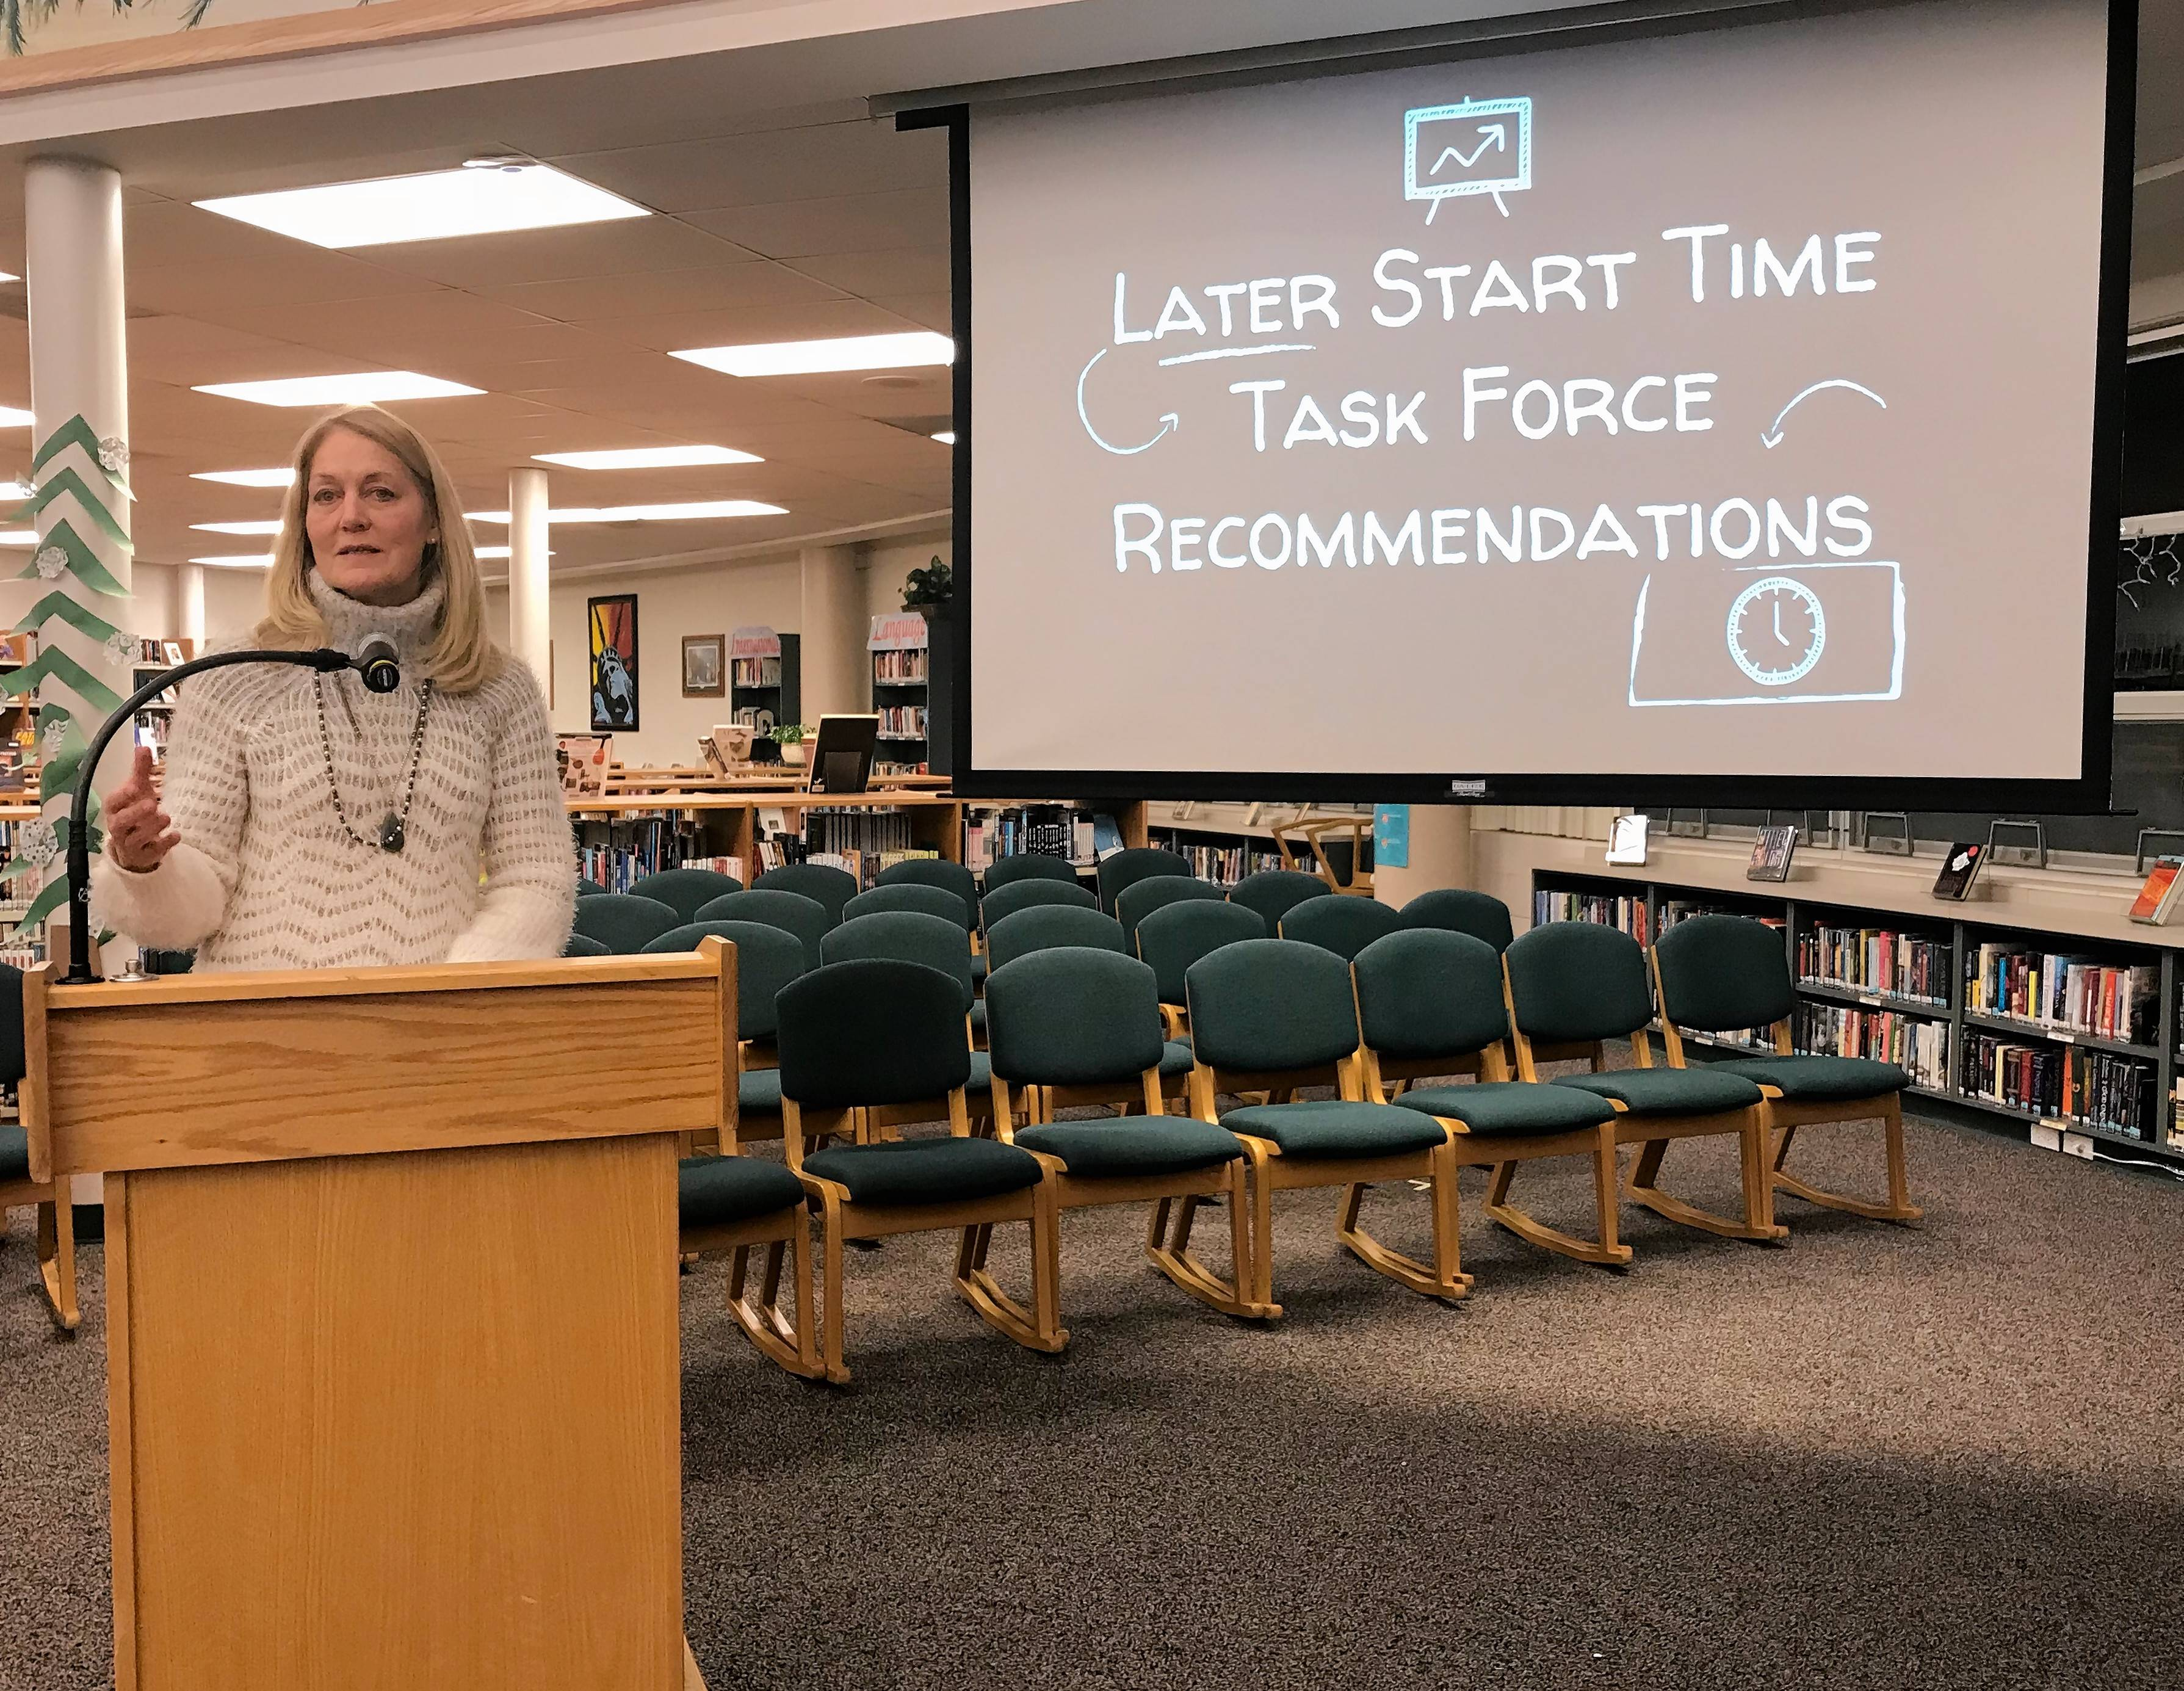 Rita Fischer, the assistant superintendent for curriculum and instruction in Libertyville-Vernon Hills Area High School District 128, talked to the school board in December 2017 about a recommendation to delay daily start times. Officials have tentatively approved such a change for the 2018-19 term.